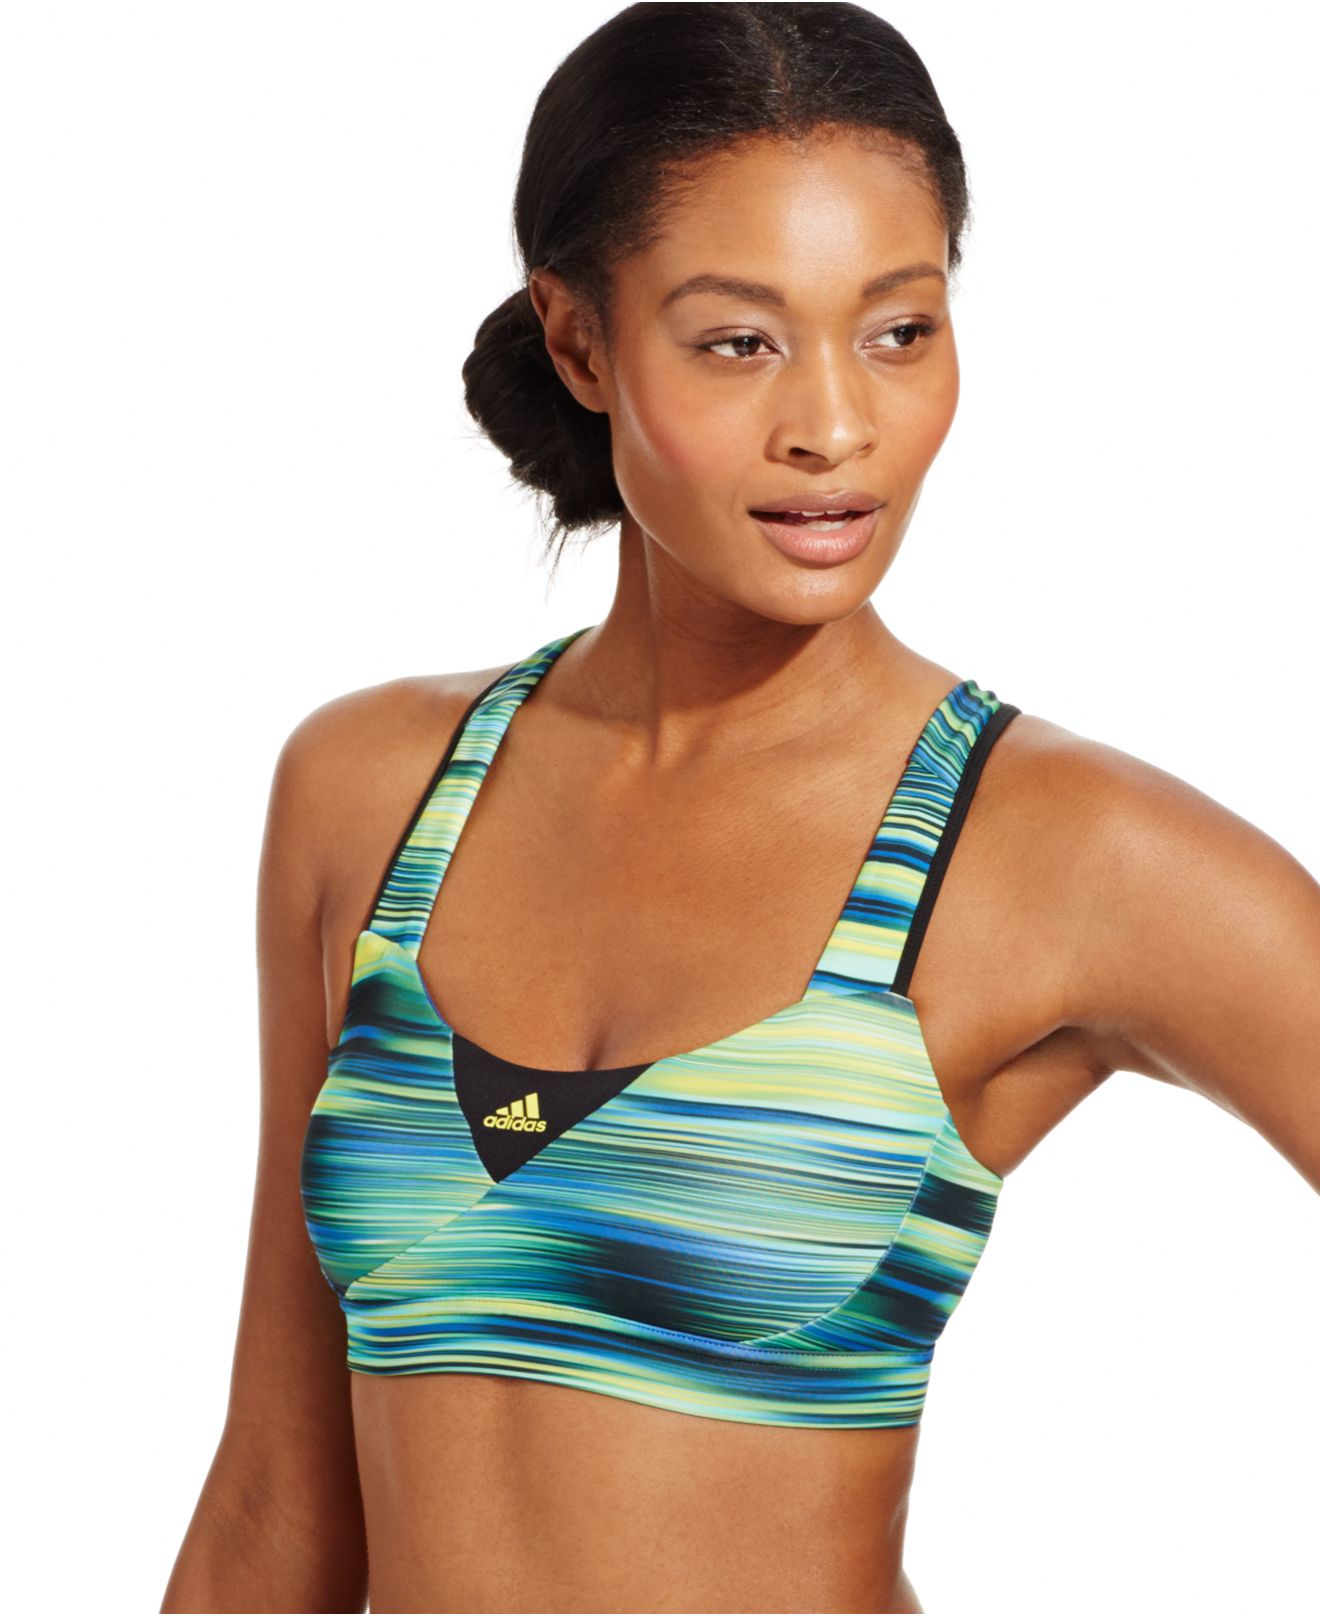 adidas climacool high support sports bra ladies